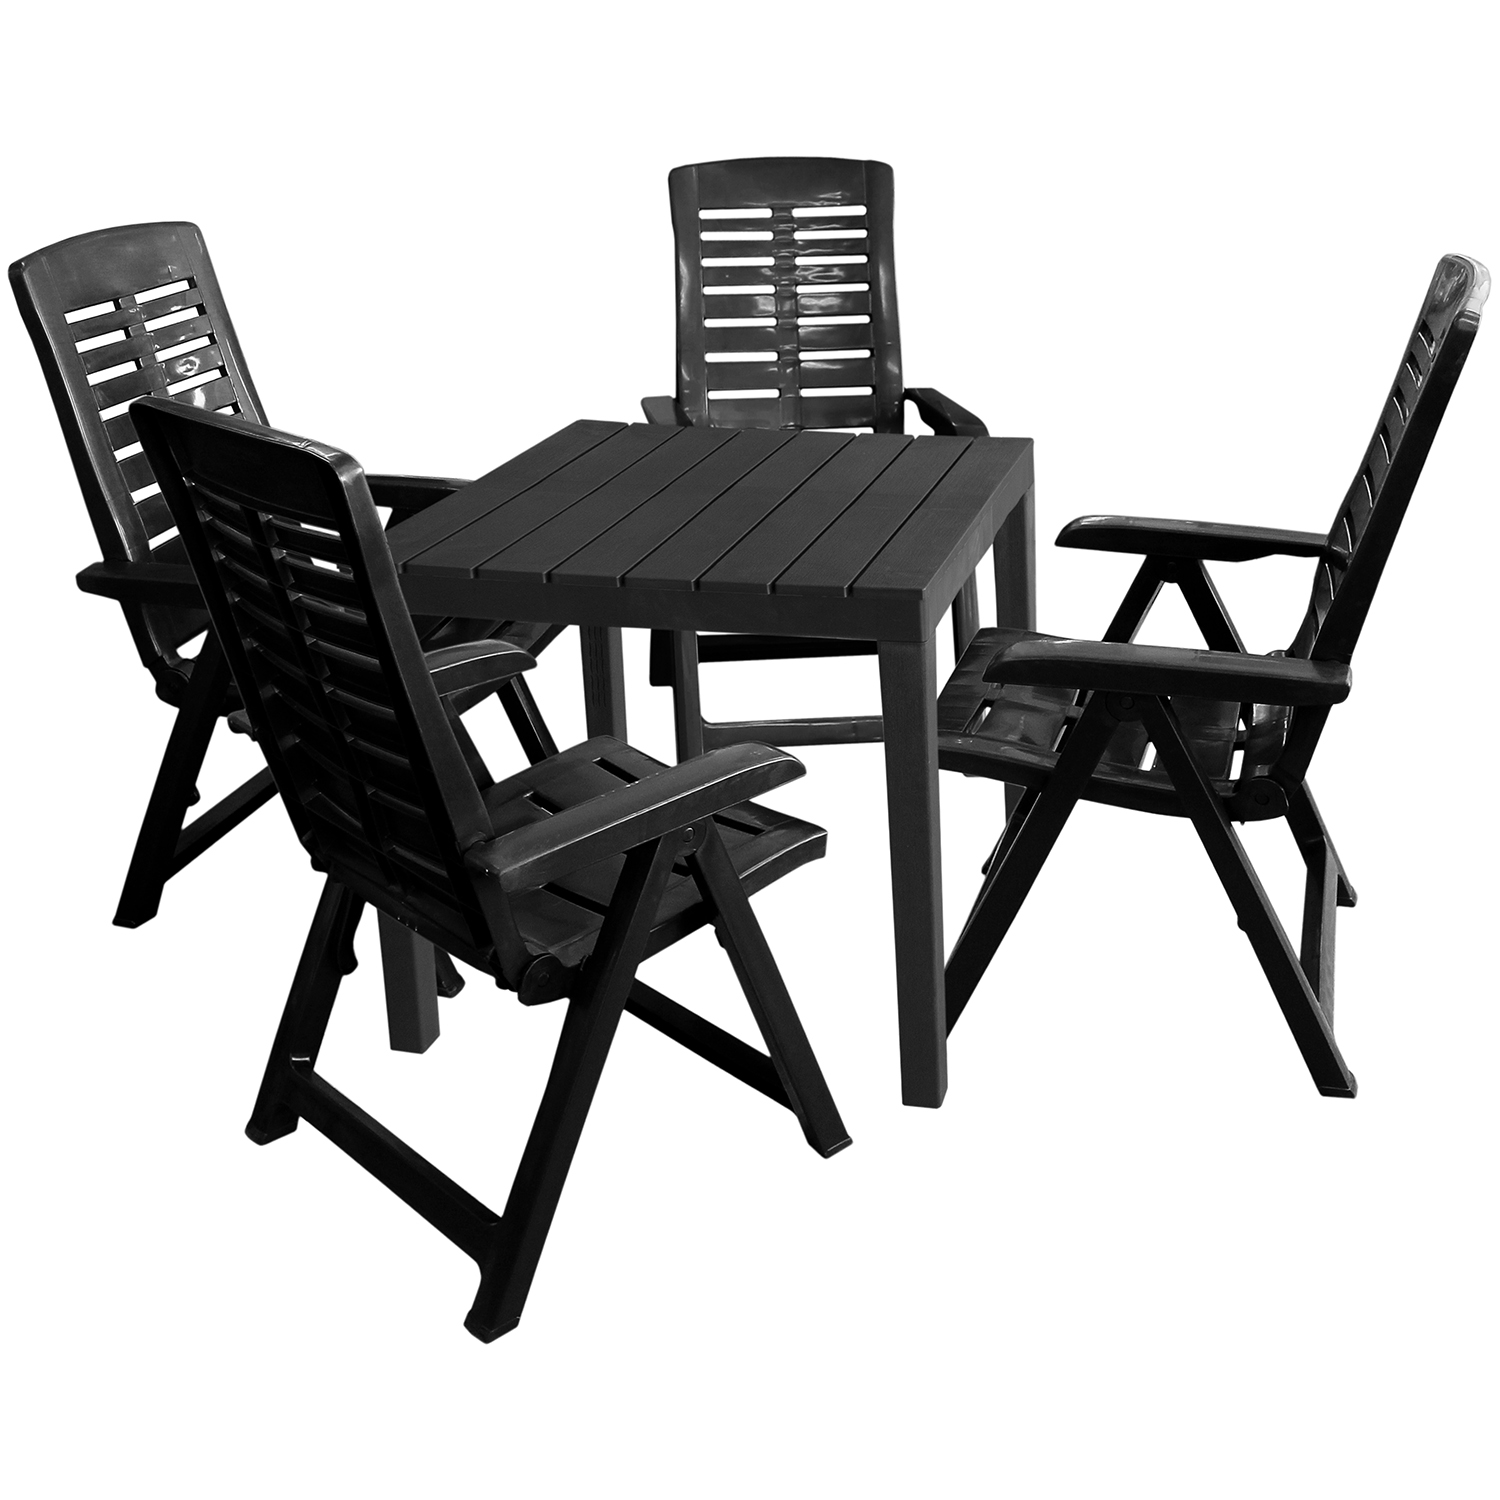 gartenm bel set gartentisch bali 78x78cm 4x klappsessel yuma anthrazit garten bistro und. Black Bedroom Furniture Sets. Home Design Ideas